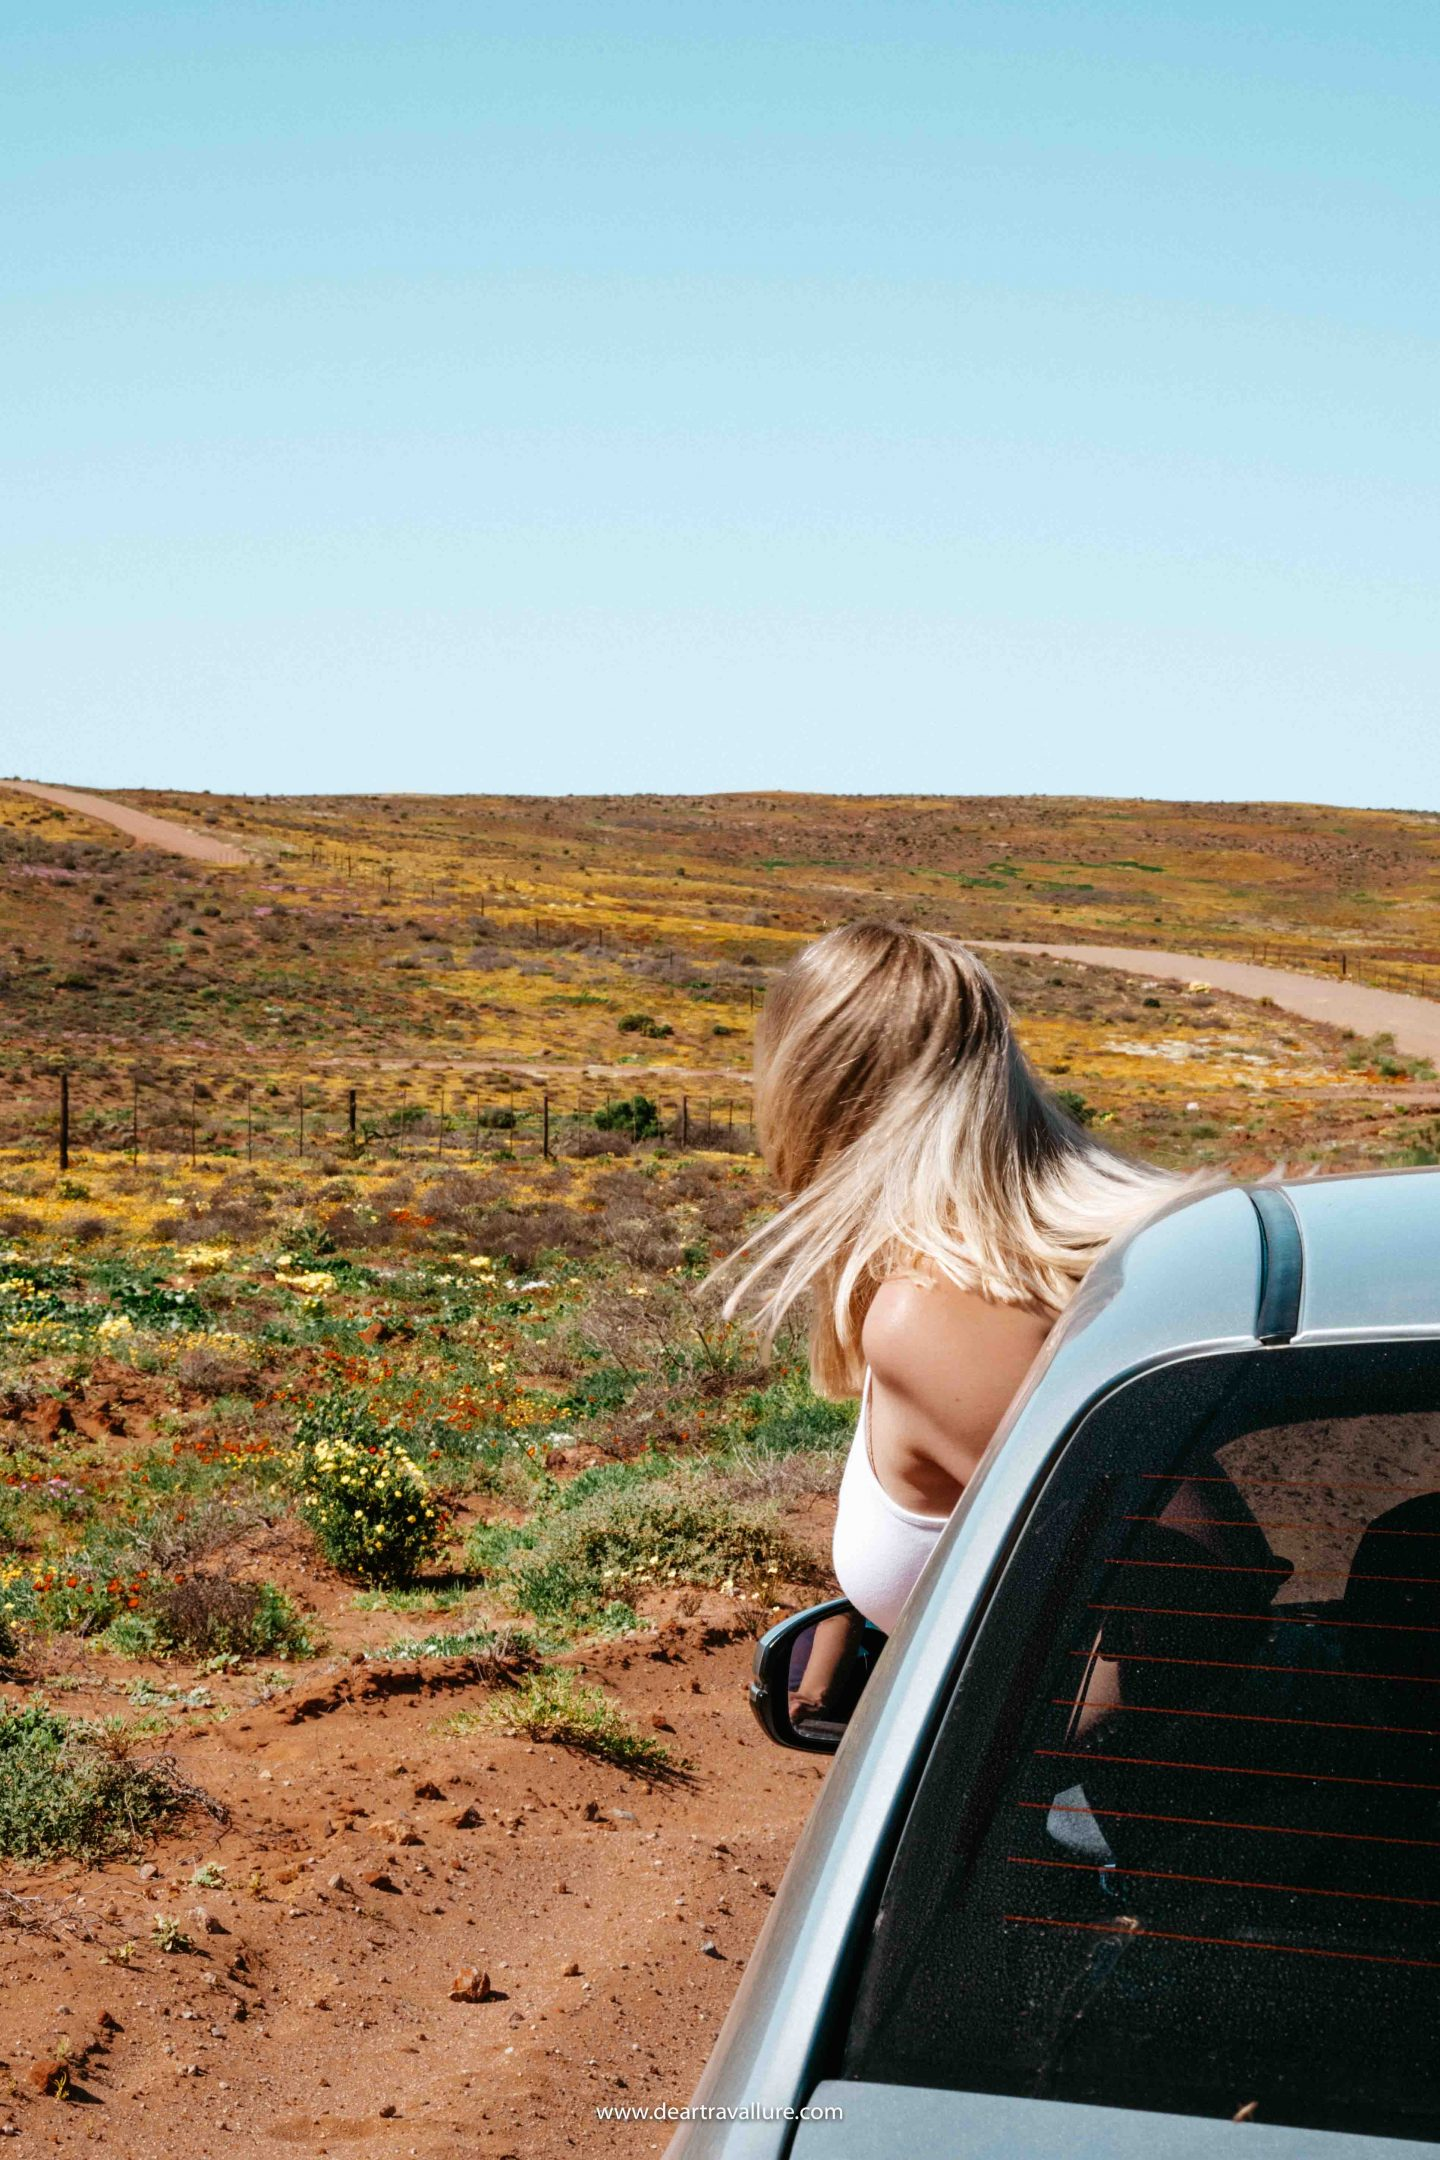 Tammy looking out of the car window at the wildflowers